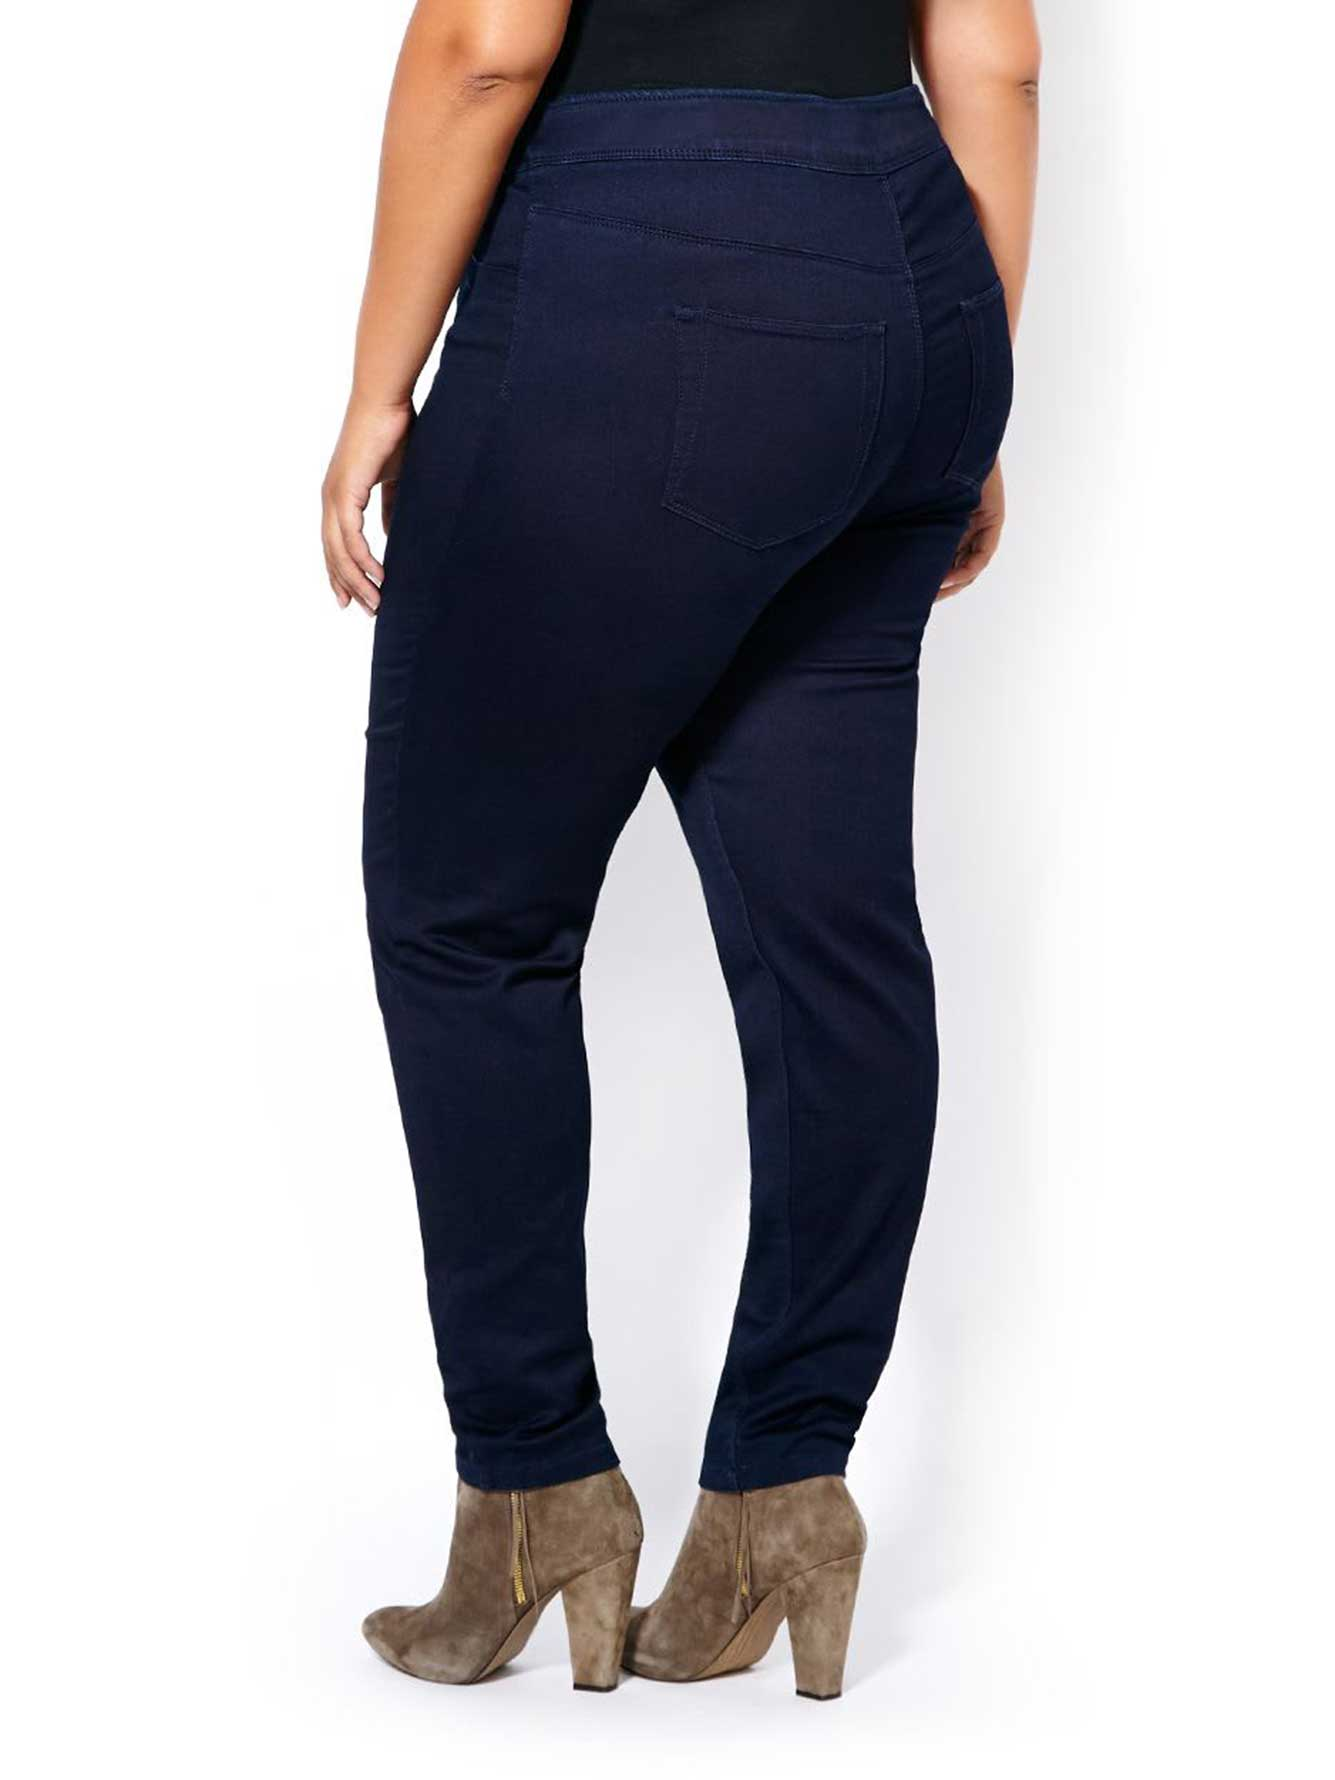 New Look Maternity Under The Bump Skinny Jegging. $ GeBe Maternity over-the-bump skinny jeans in black. $ ASOS DESIGN Maternity tapered jeans with curved seams in indigo wash with over the bump waistband.